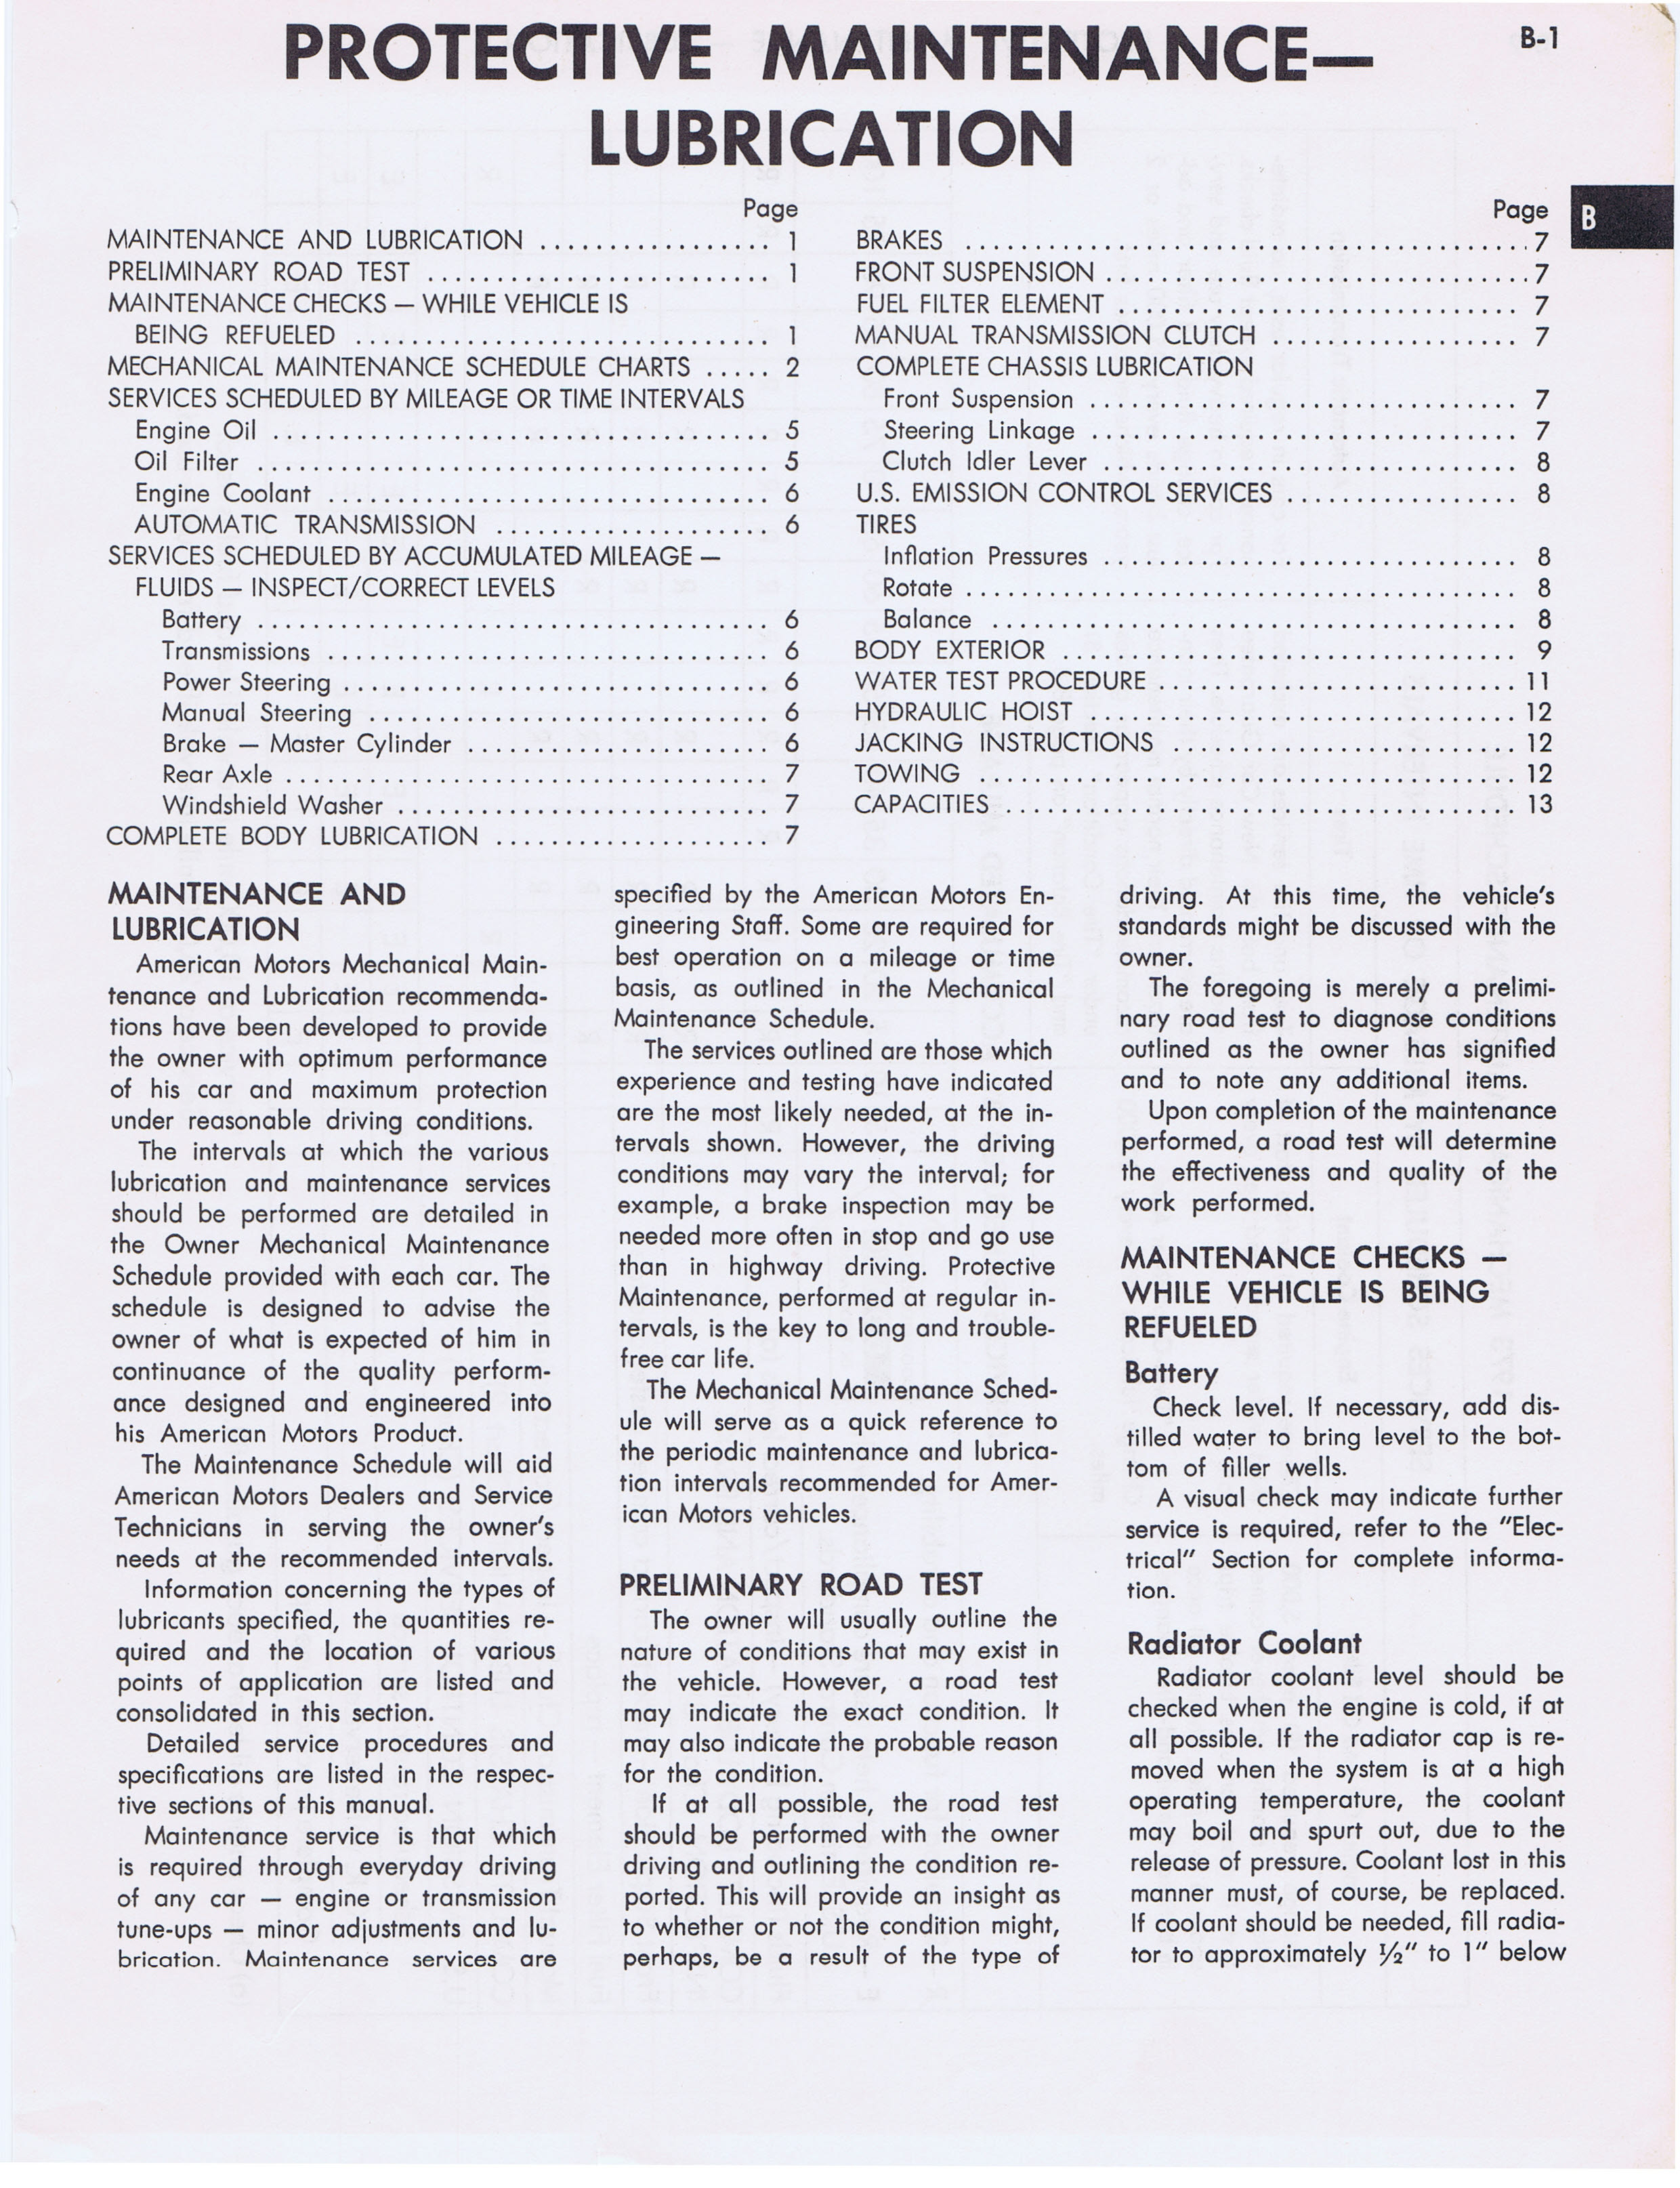 1973 AMC Technical Service Manual page 9 of 487